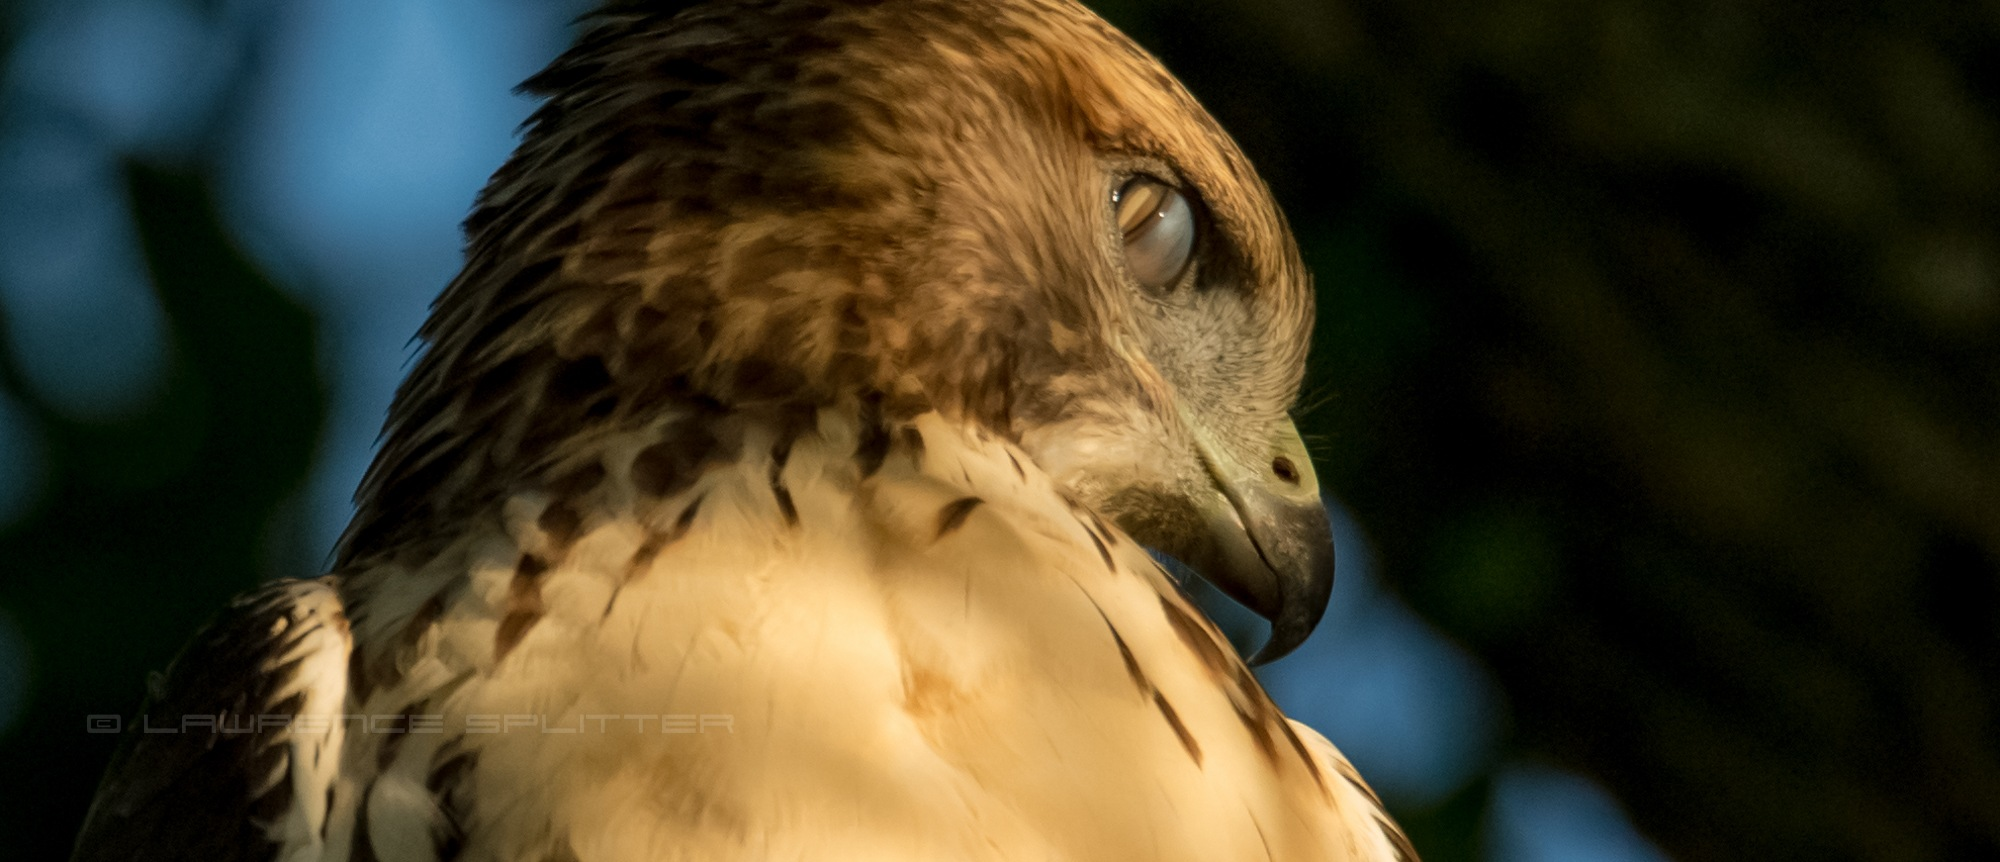 Red Tail Hawk displaying nictitating membrane by Lawrence Splitter